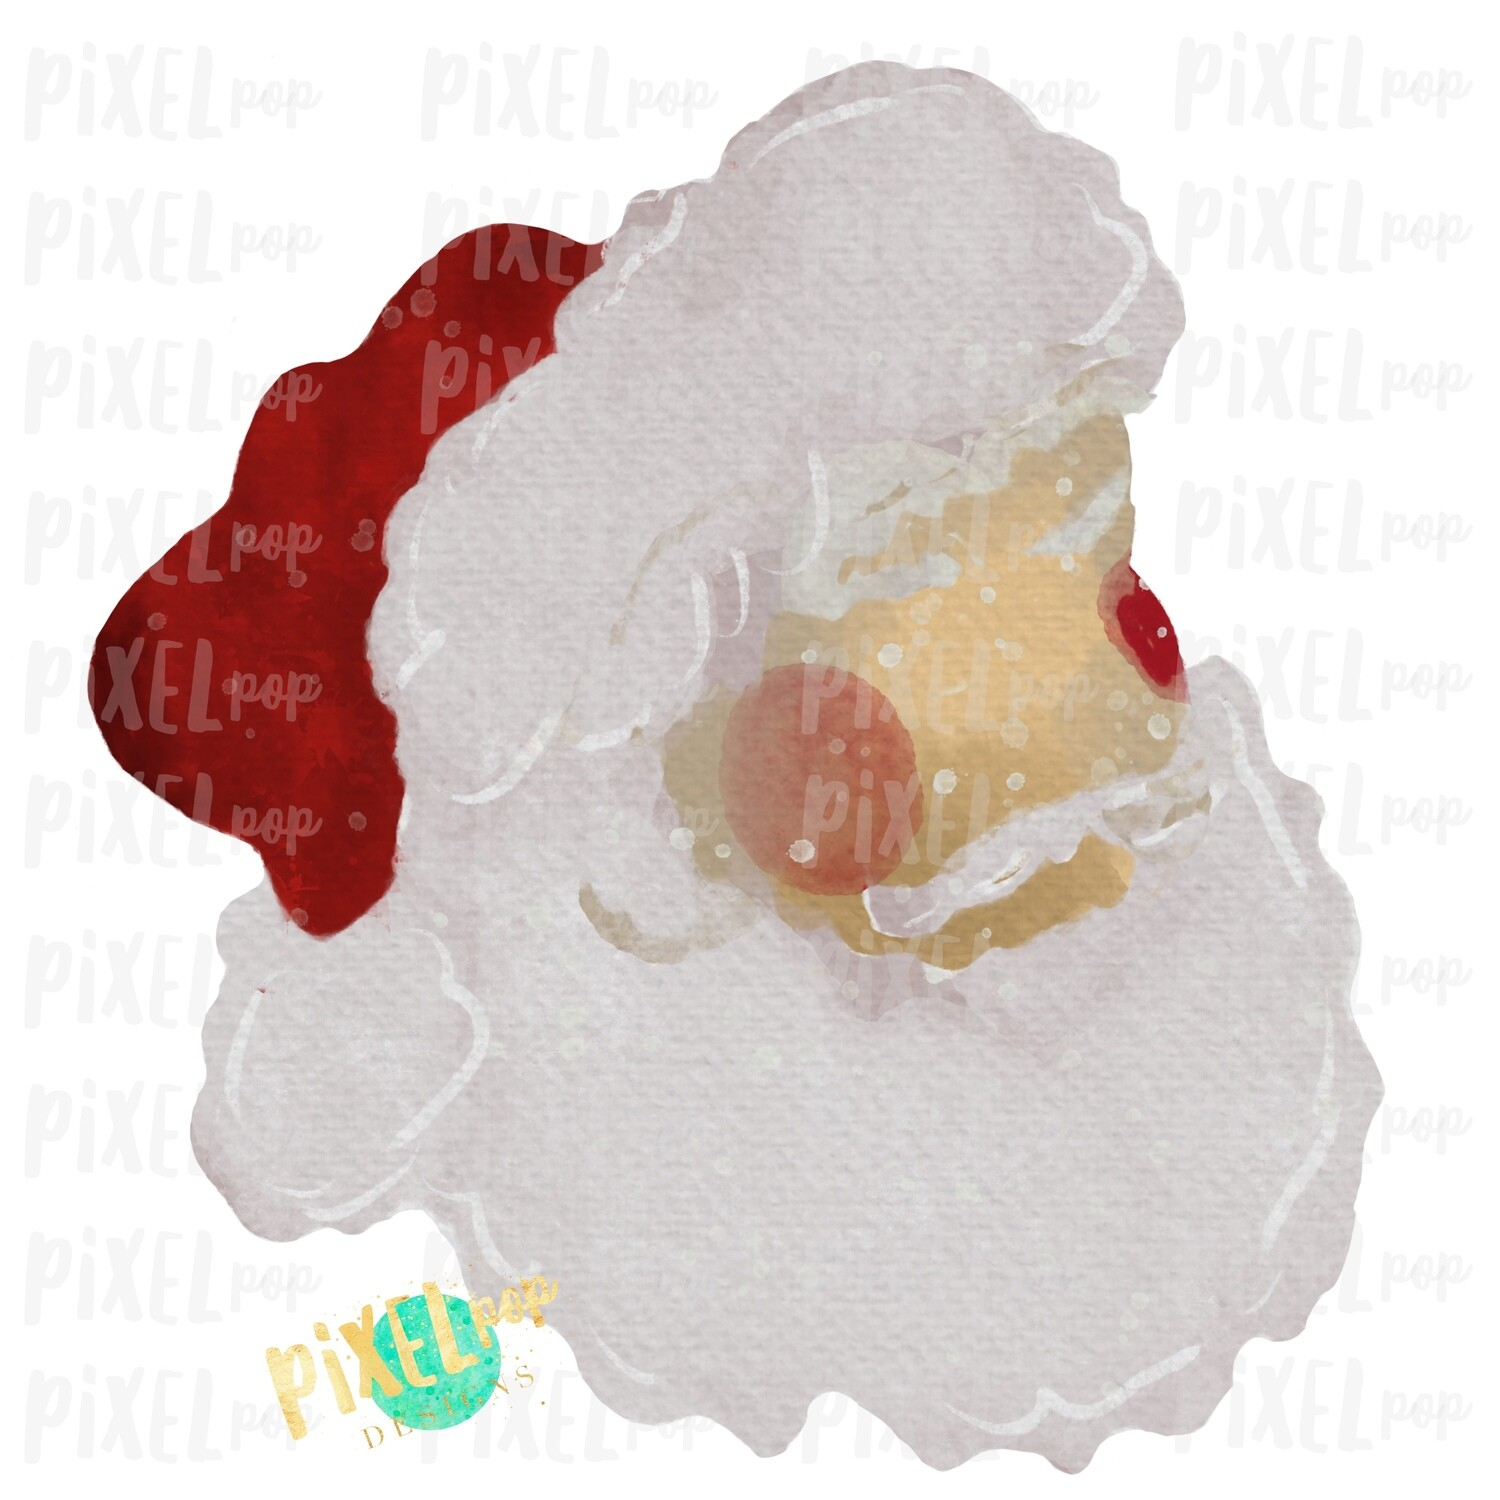 Santa Claus Painted Digital Watercolor Sublimation Art PNG | Drawn Design | Sublimation PNG | Digital Download | Printable Artwork | Art